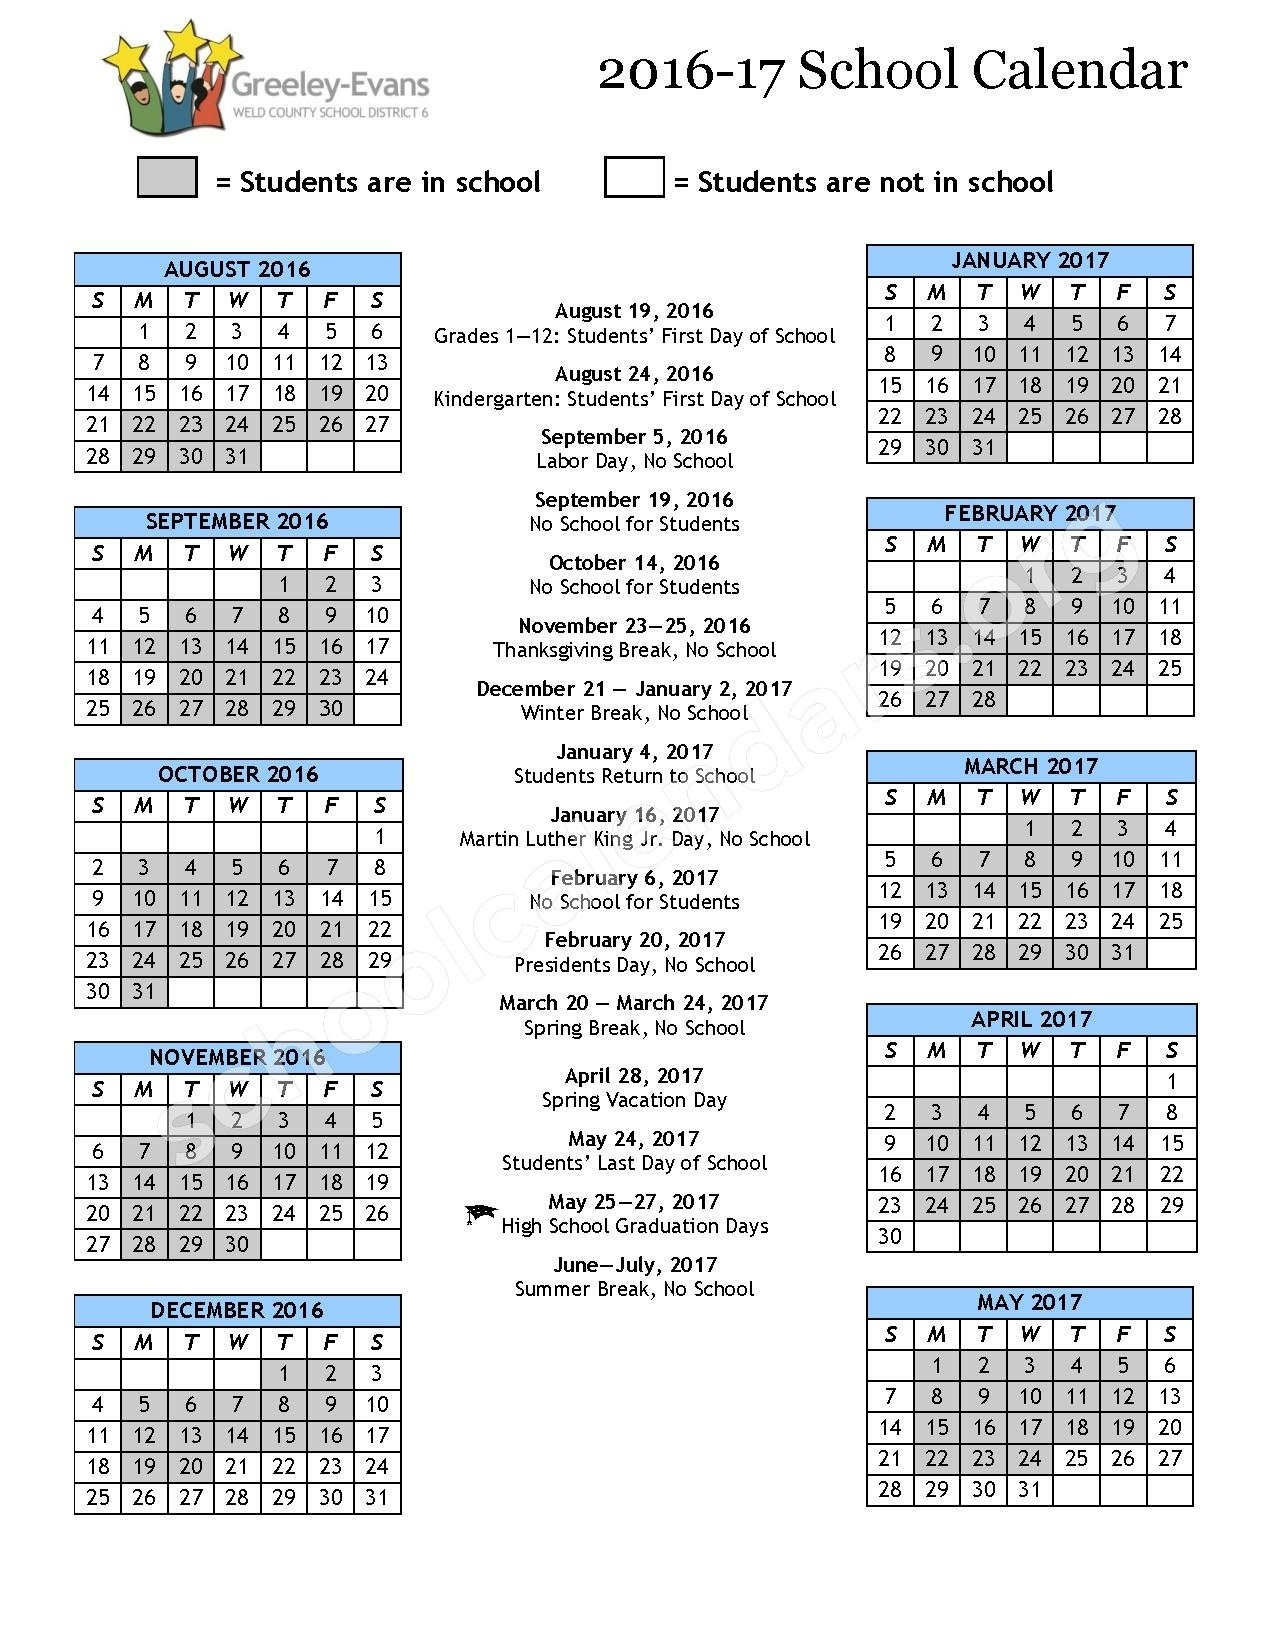 2016 - 2017 District Calendar | Greeley-Evans School District 6_District 6 School Calendar